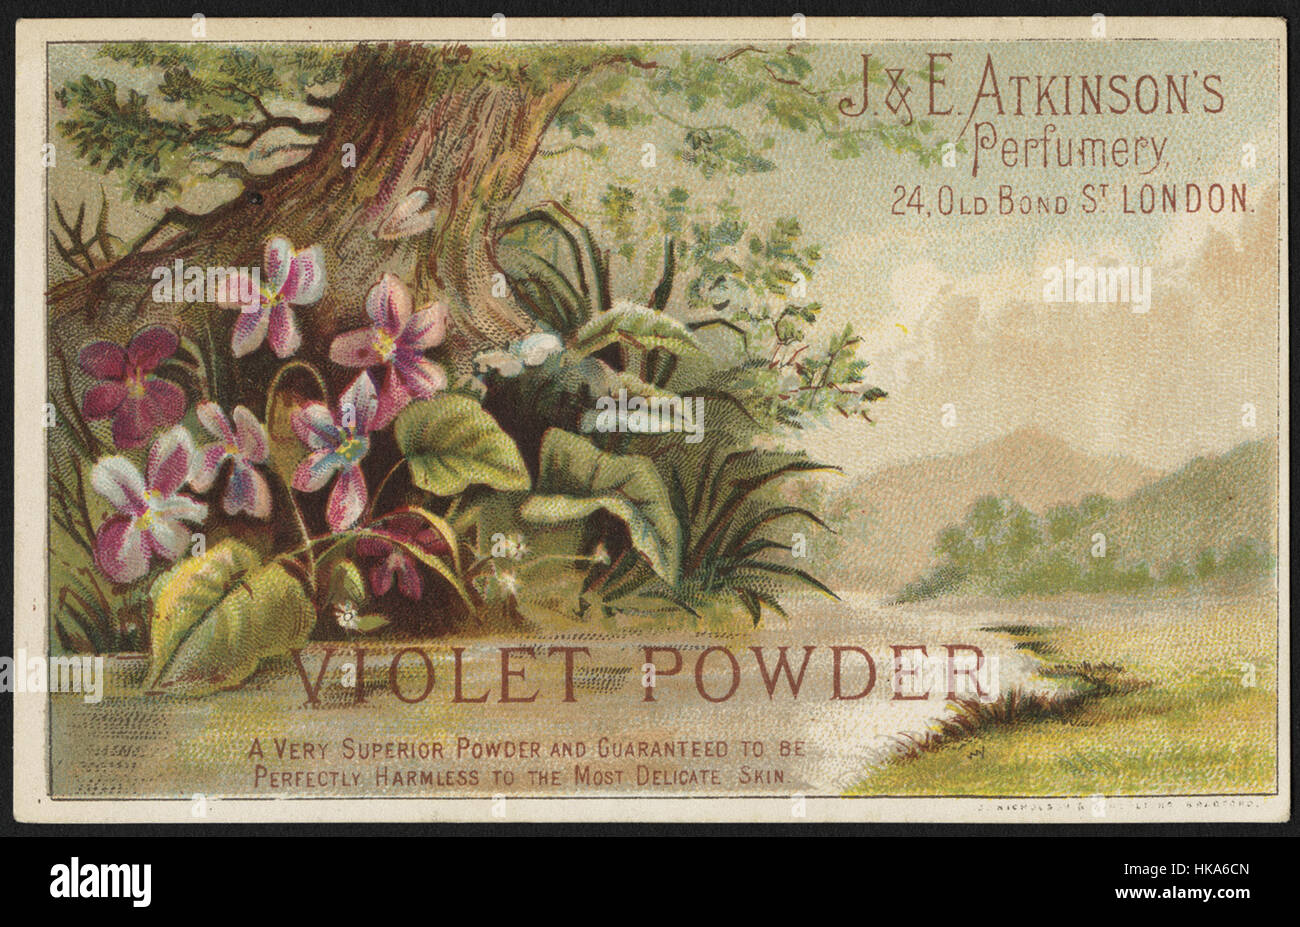 Violet Powder, a very superior powder and guaranteed to be perfectly harmless to most delicate skin. - Stock Image